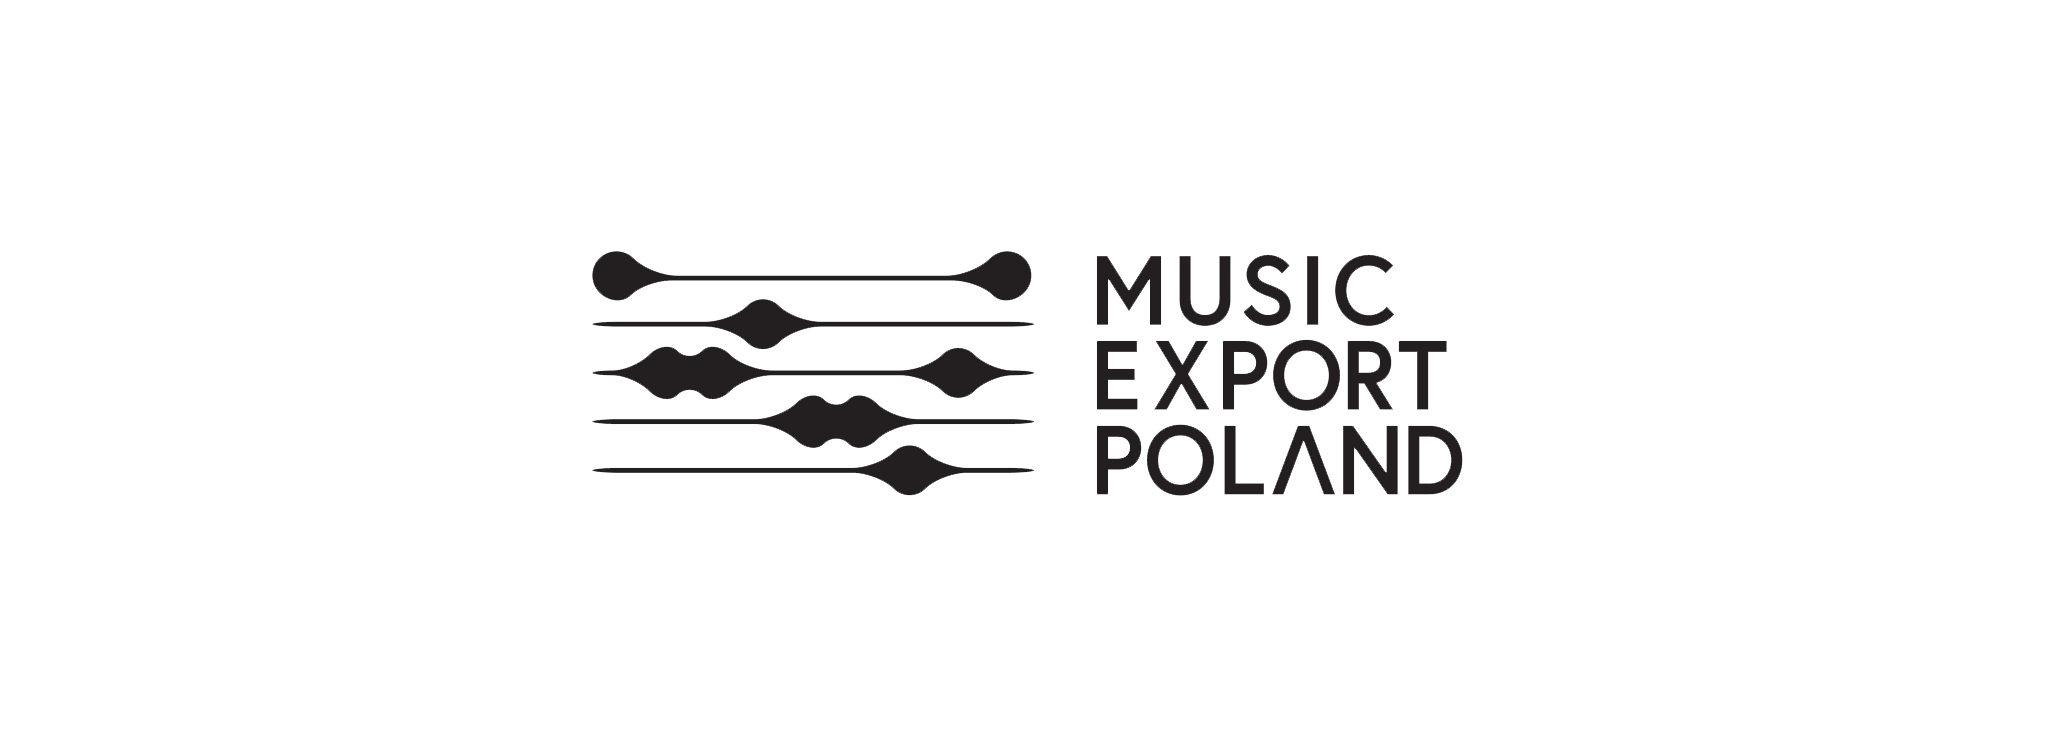 Music Export Poland